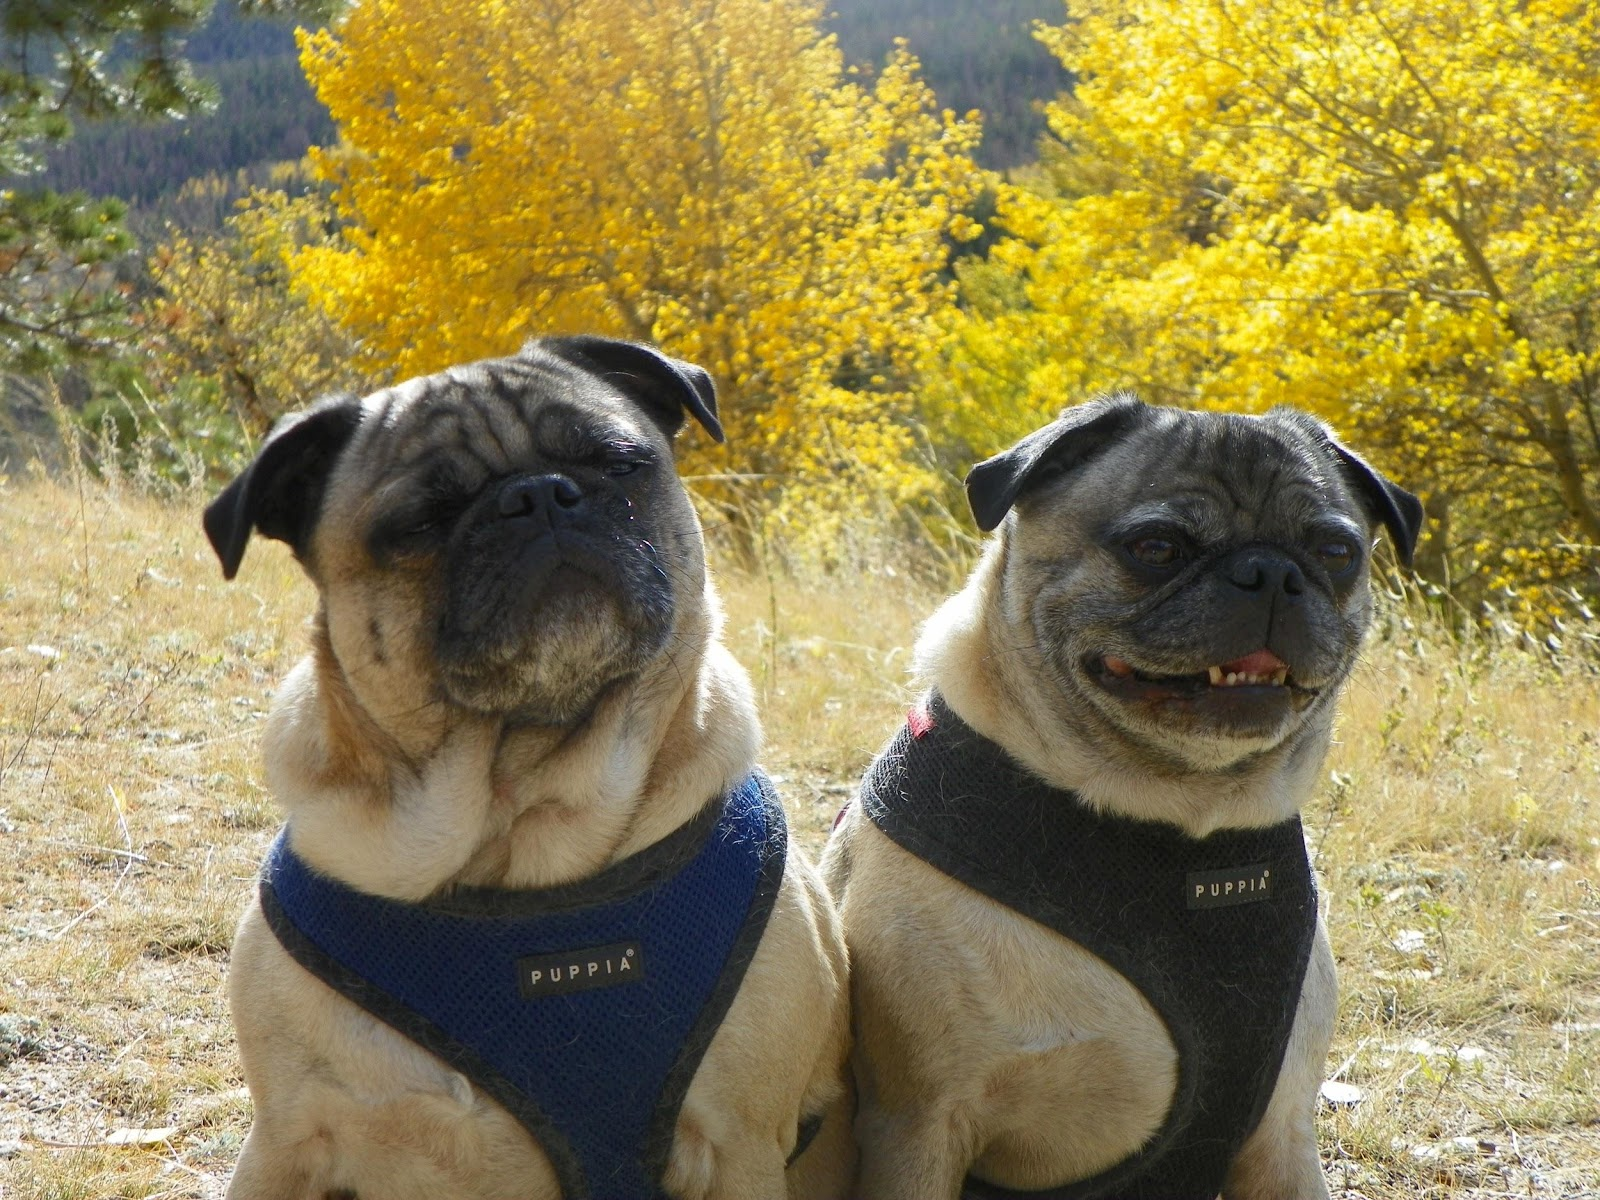 Dog-friendly douglas county - two pugs